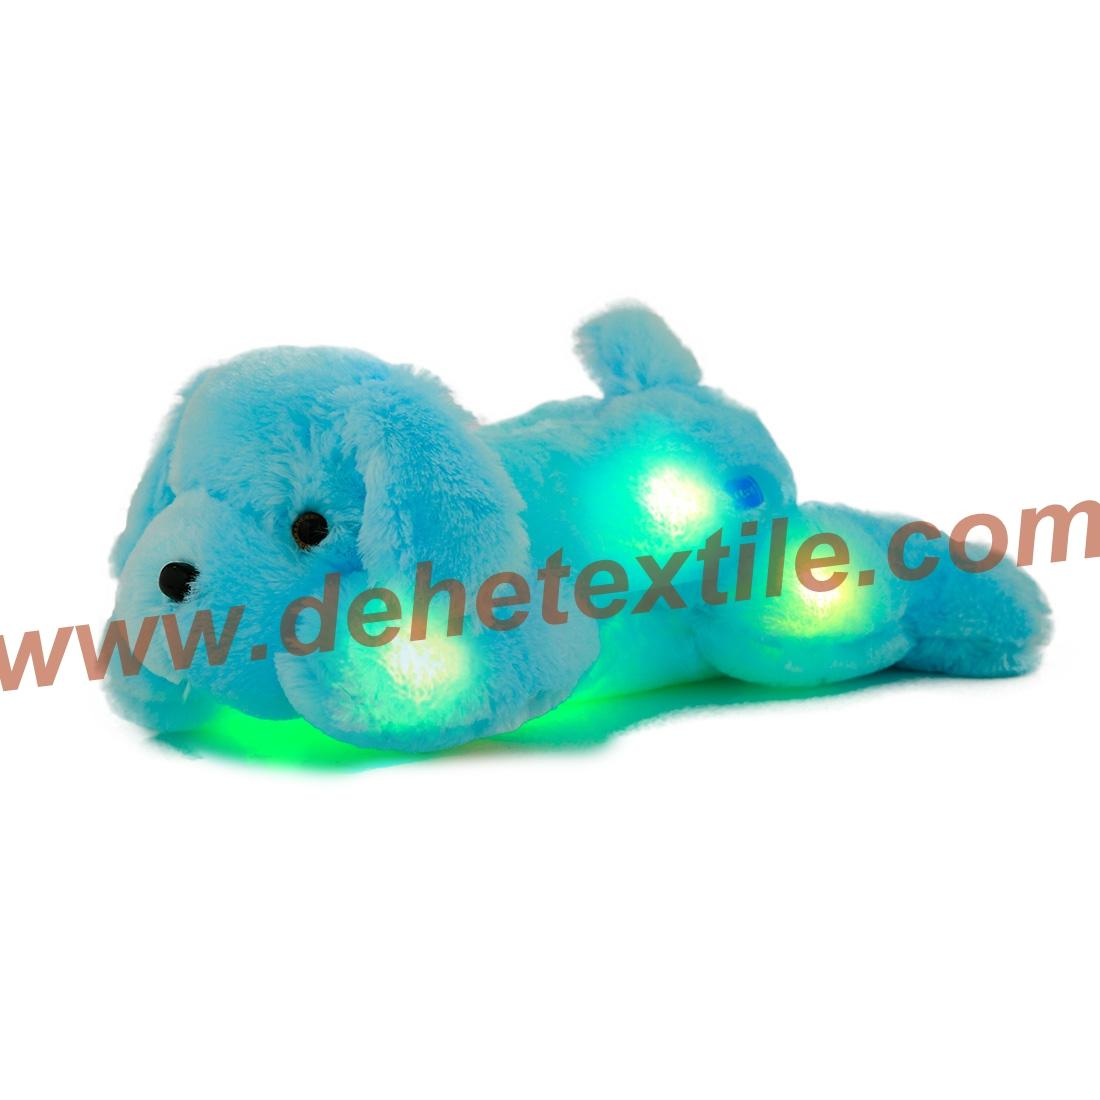 Creative Night Light LED Stuffed Animals Dog Glow Plush Toys Gifts for Kid 6